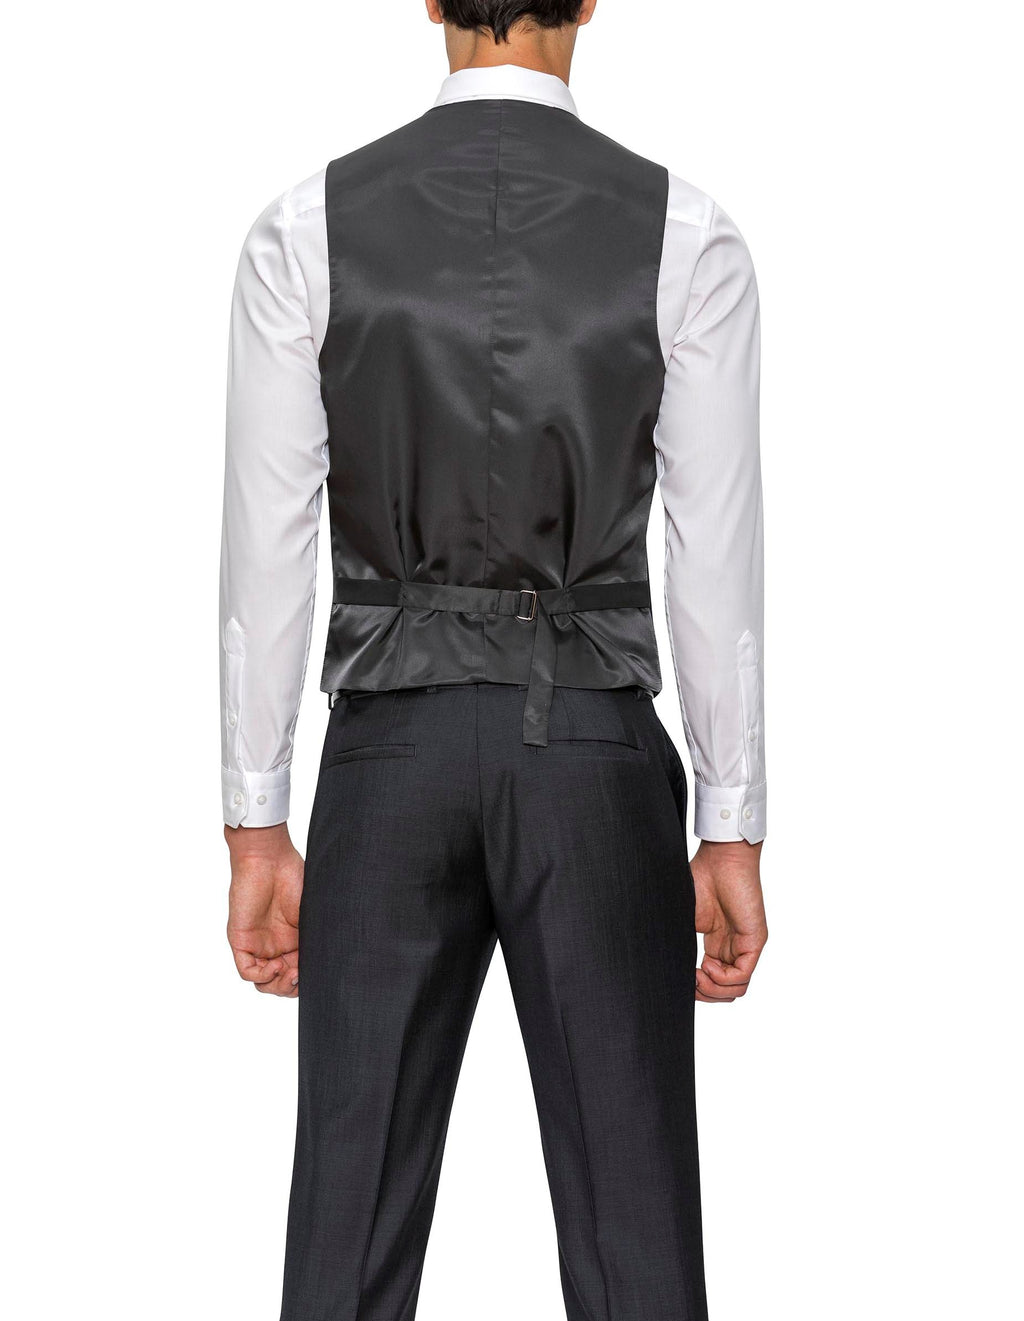 Gibson Charcoal Vest